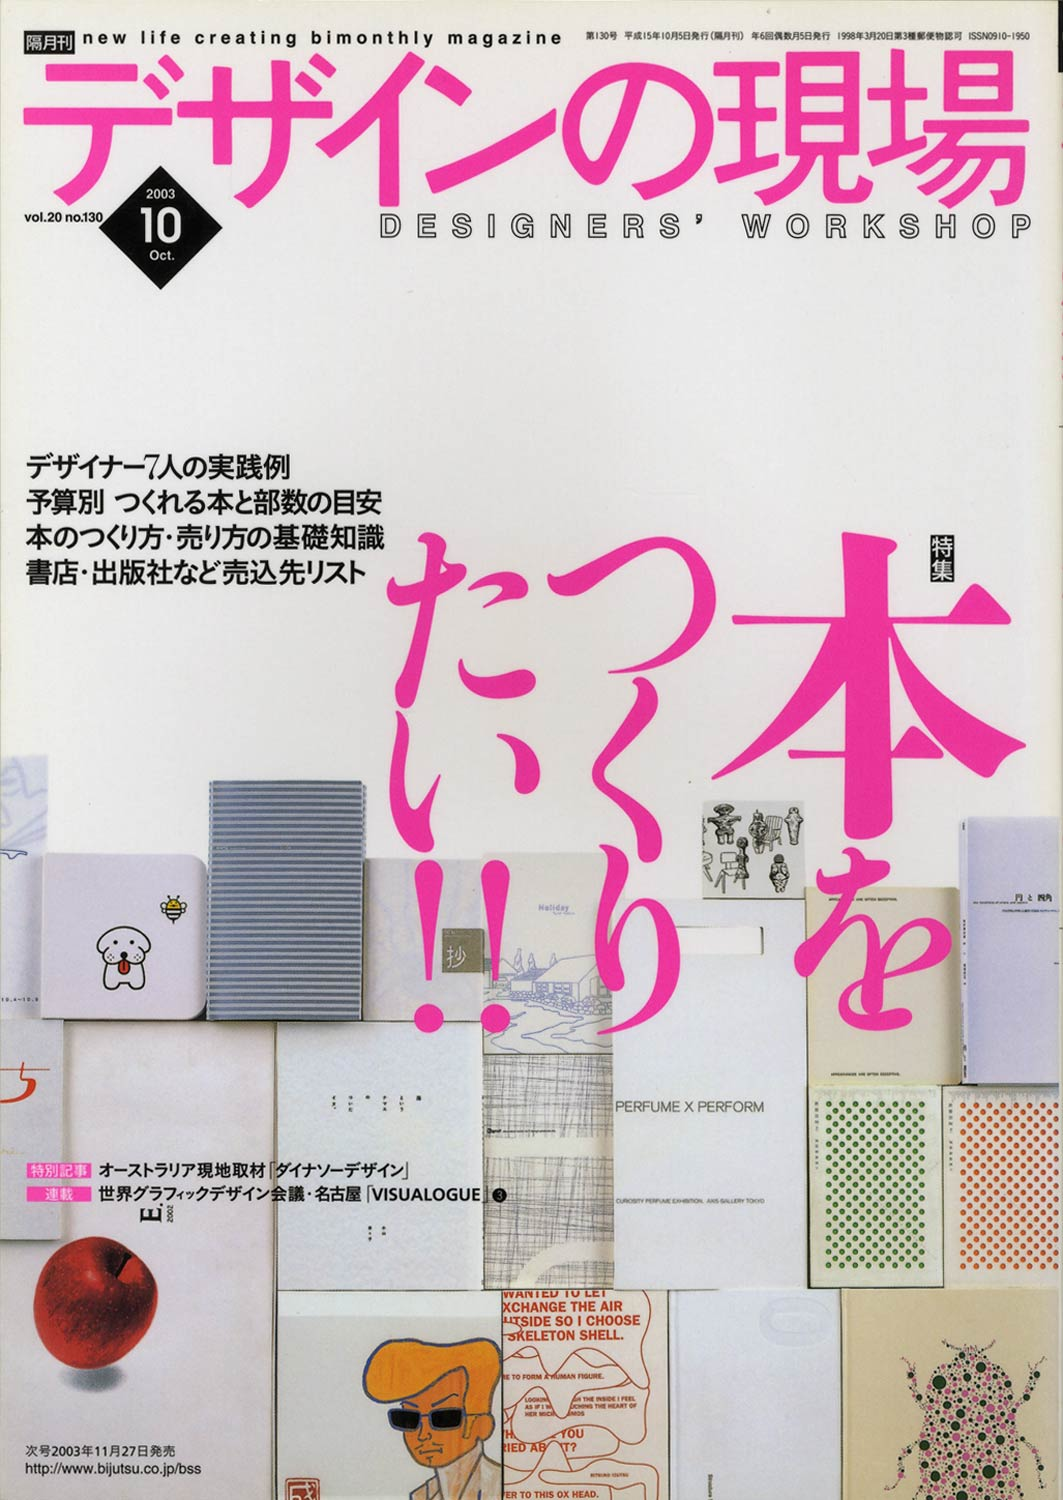 デザインの現場 DESIGNERS' WORKSHOP VOL.20 NO.130[image1]